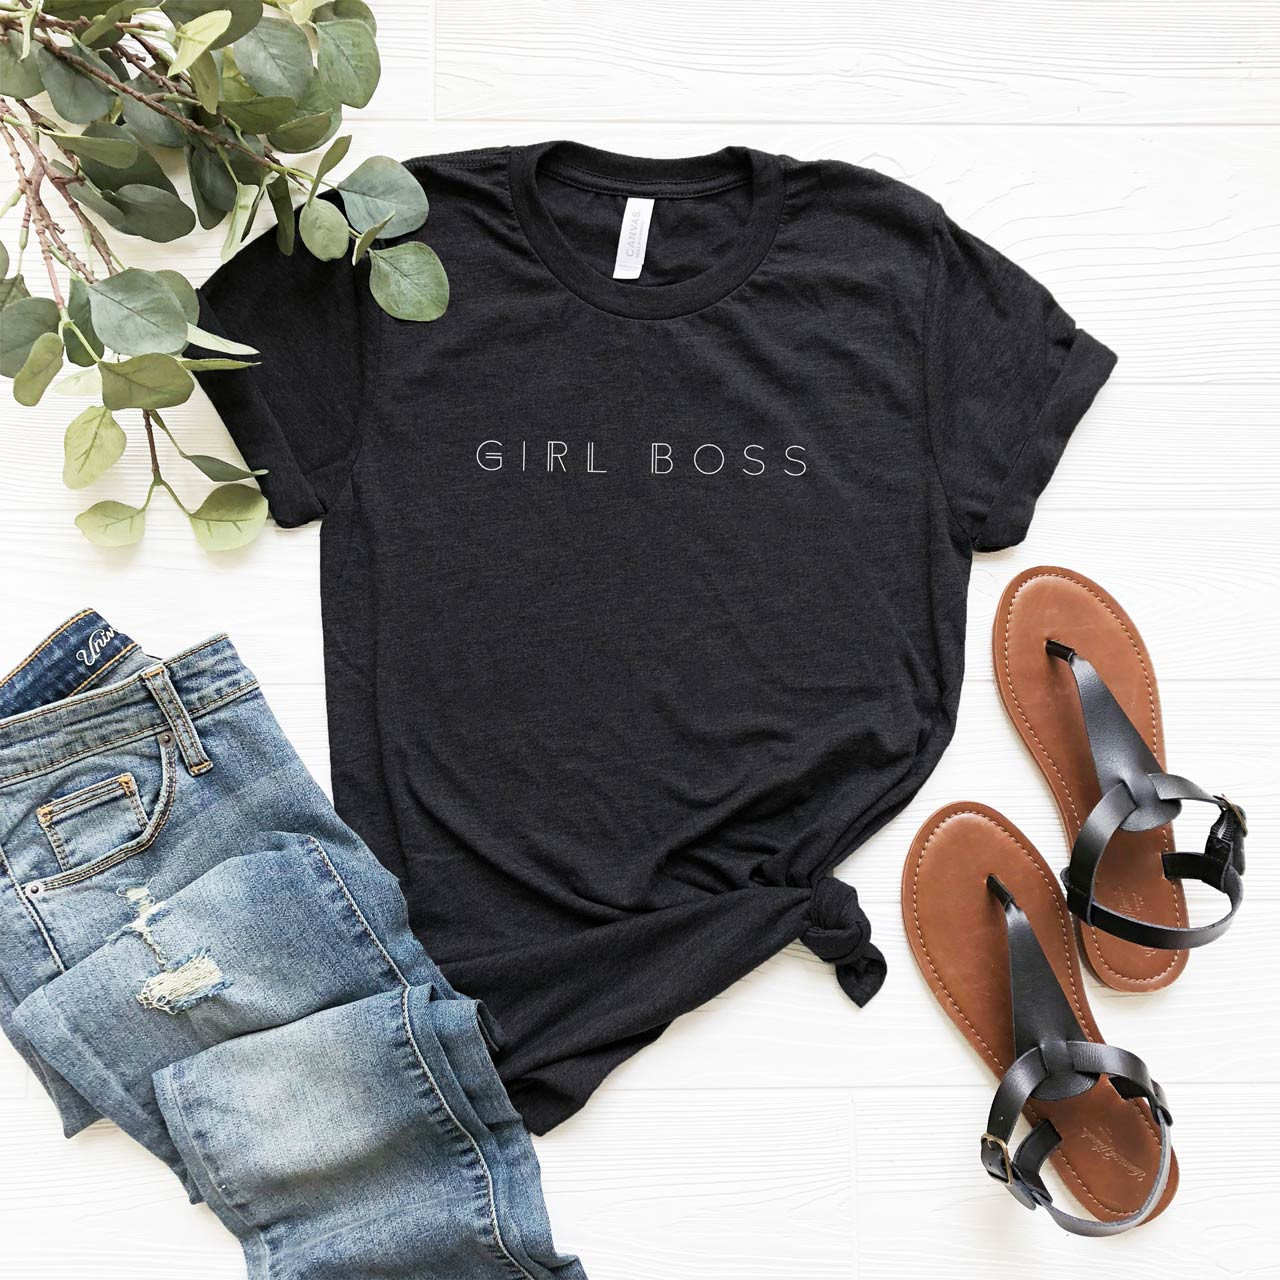 GIRL BOSS Vintage T-Shirt (White on Charcoal Gray) from The Printed Home